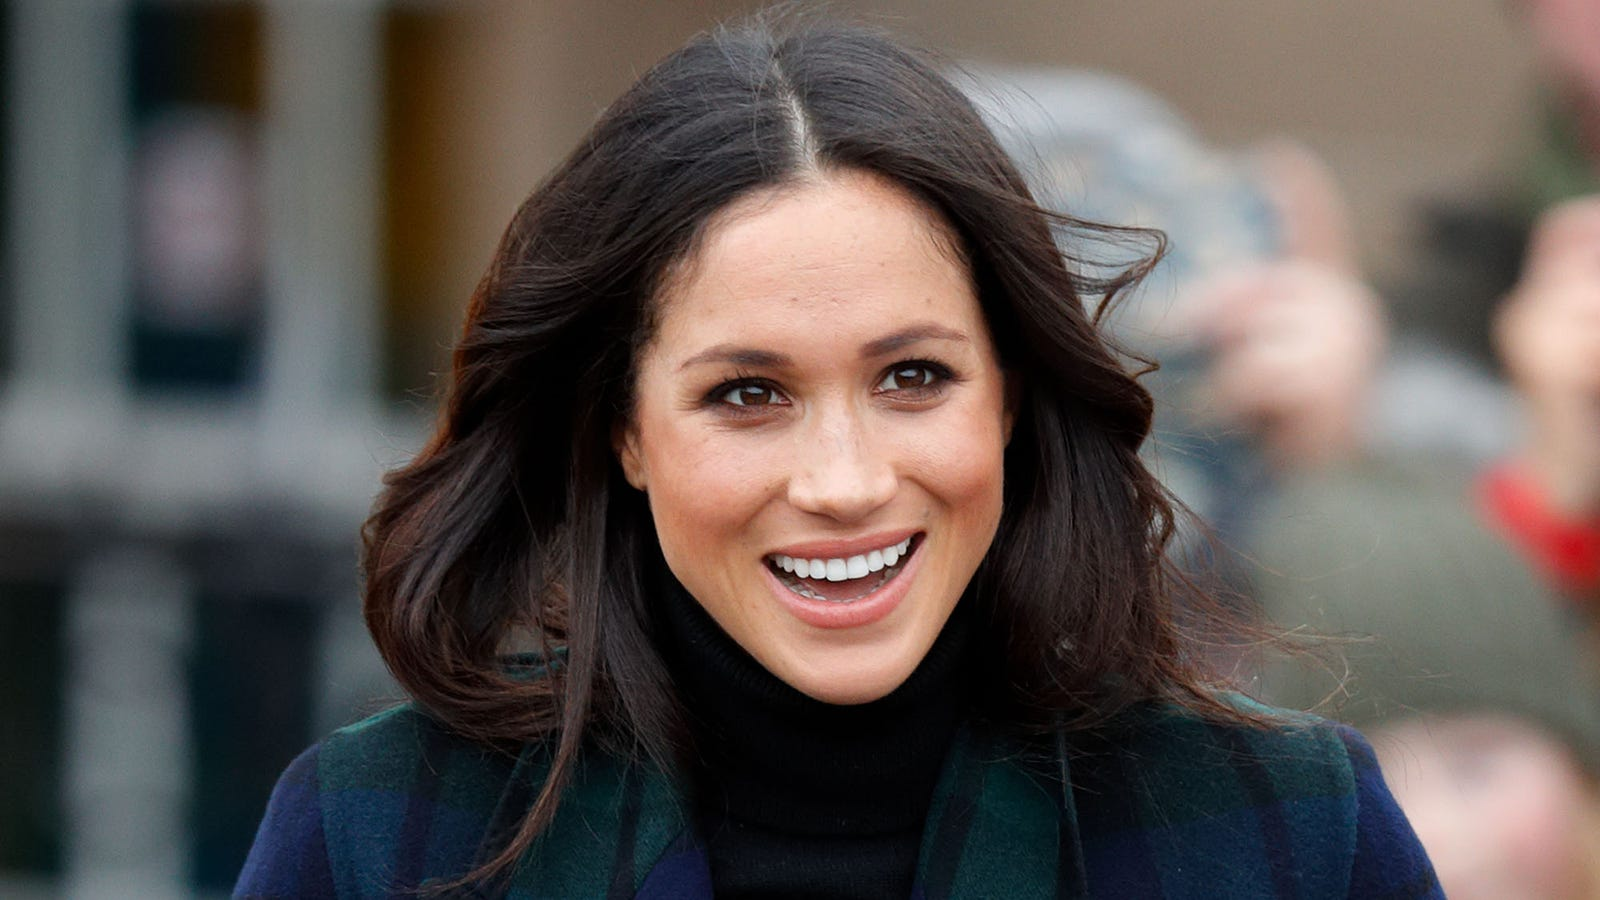 "'To Prepare For Holding A Briefcase On ""Deal Or No Deal,"" I Had To Get Into The Headspace Of A Madman': 5 Questions With Meghan Markle"